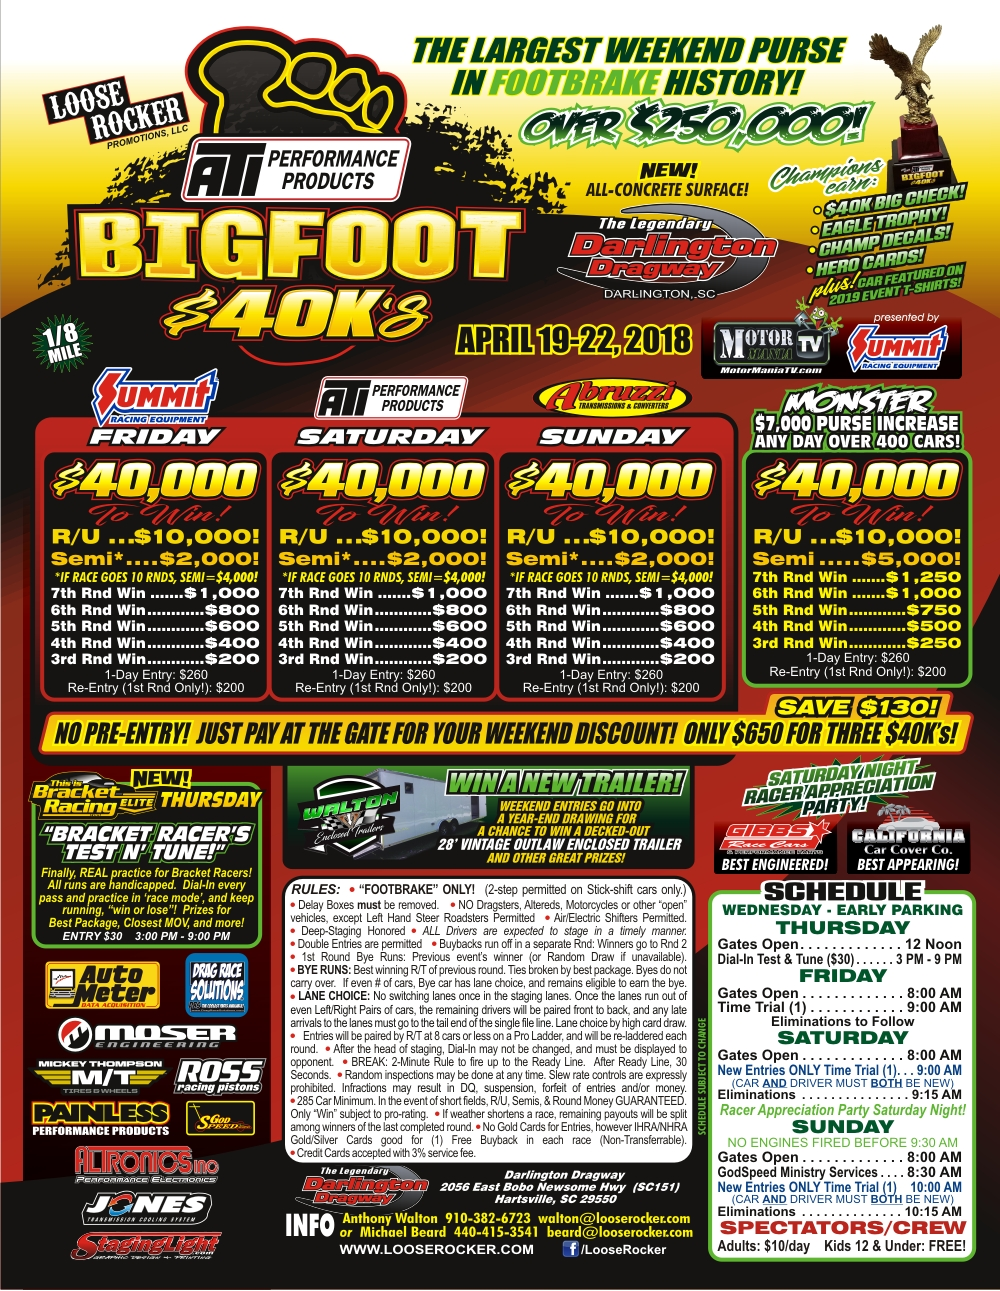 BIGFOOT18